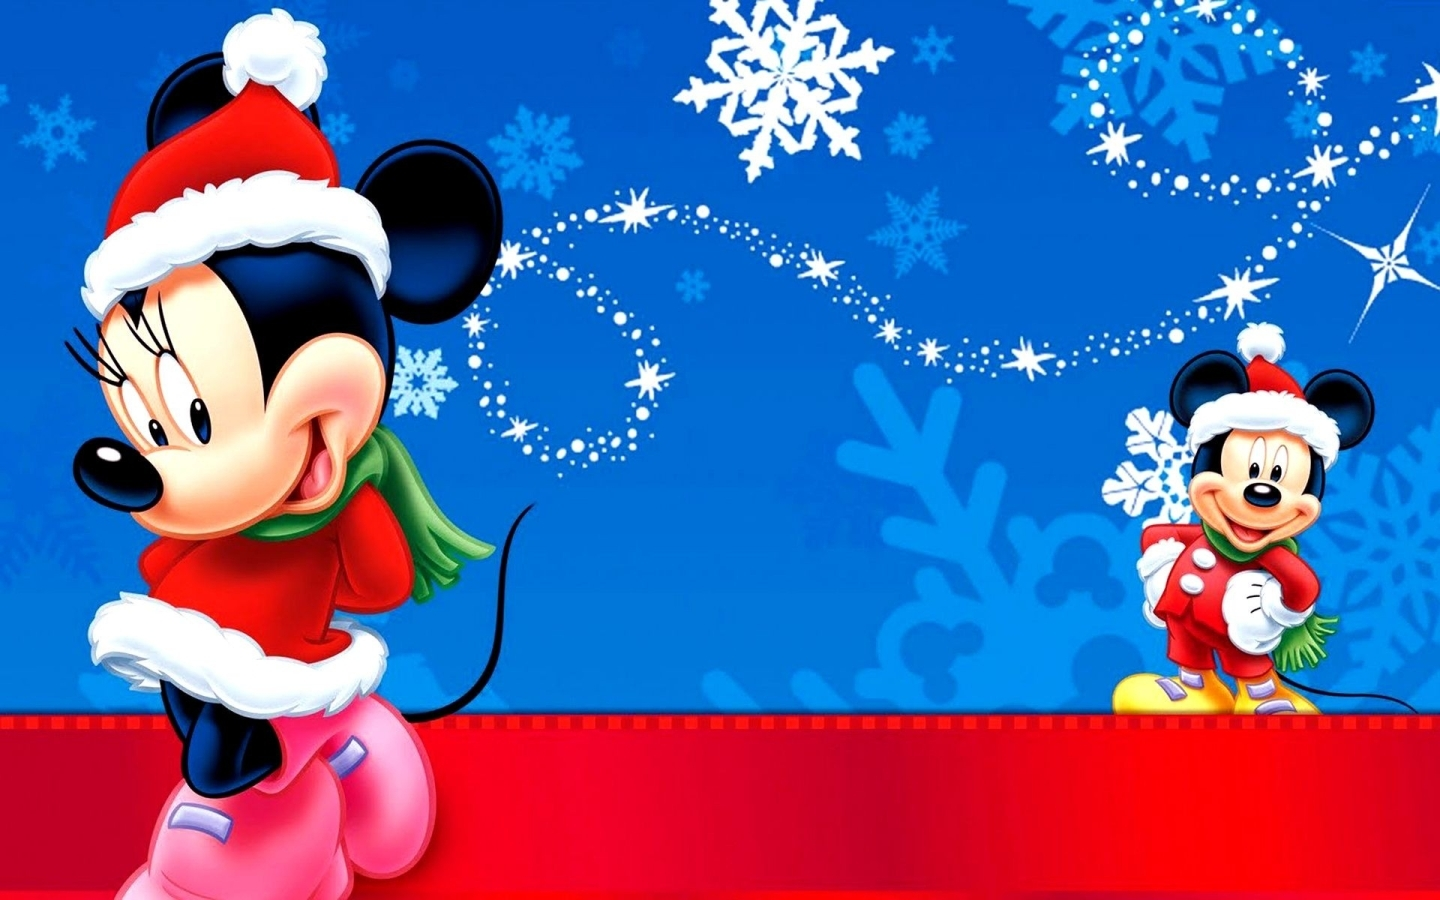 Mickey And Minnie Christmas Backgrounds , HD Wallpaper & Backgrounds